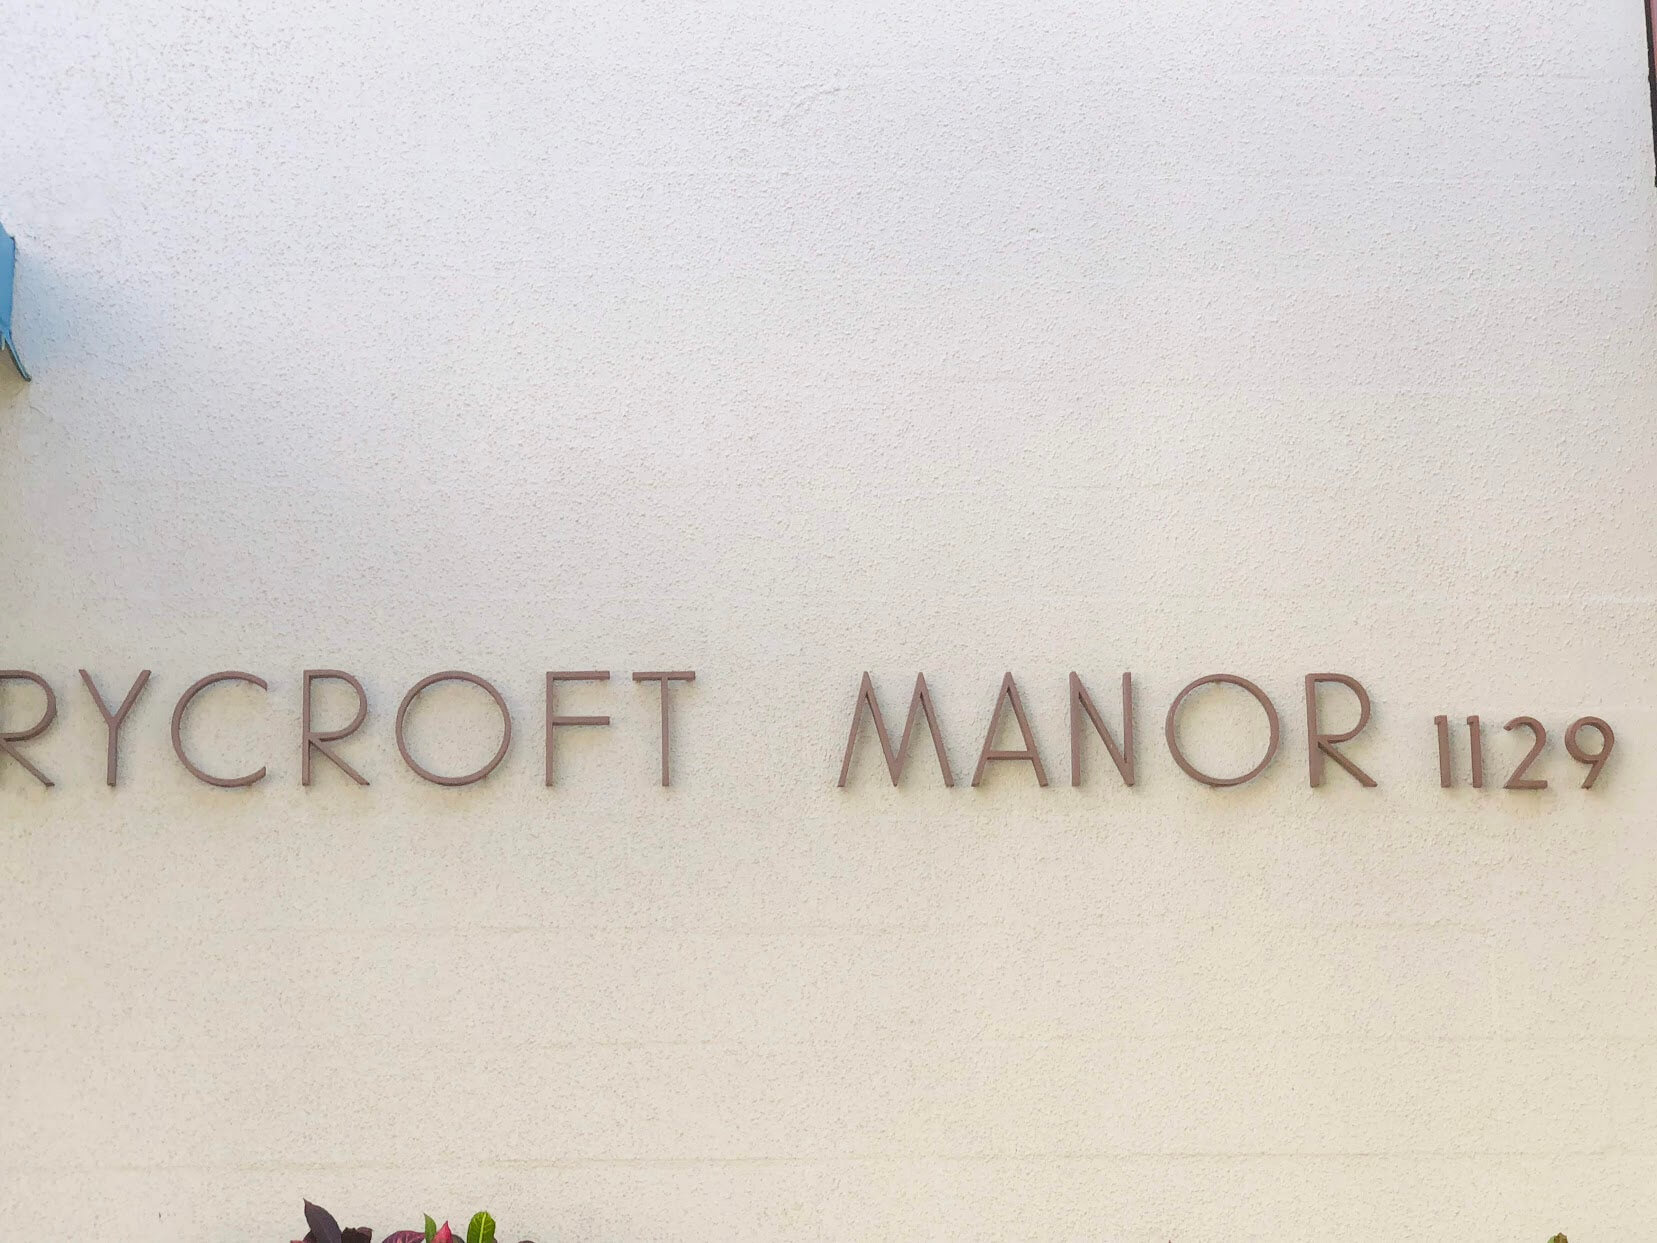 Rycroft Manorの看板